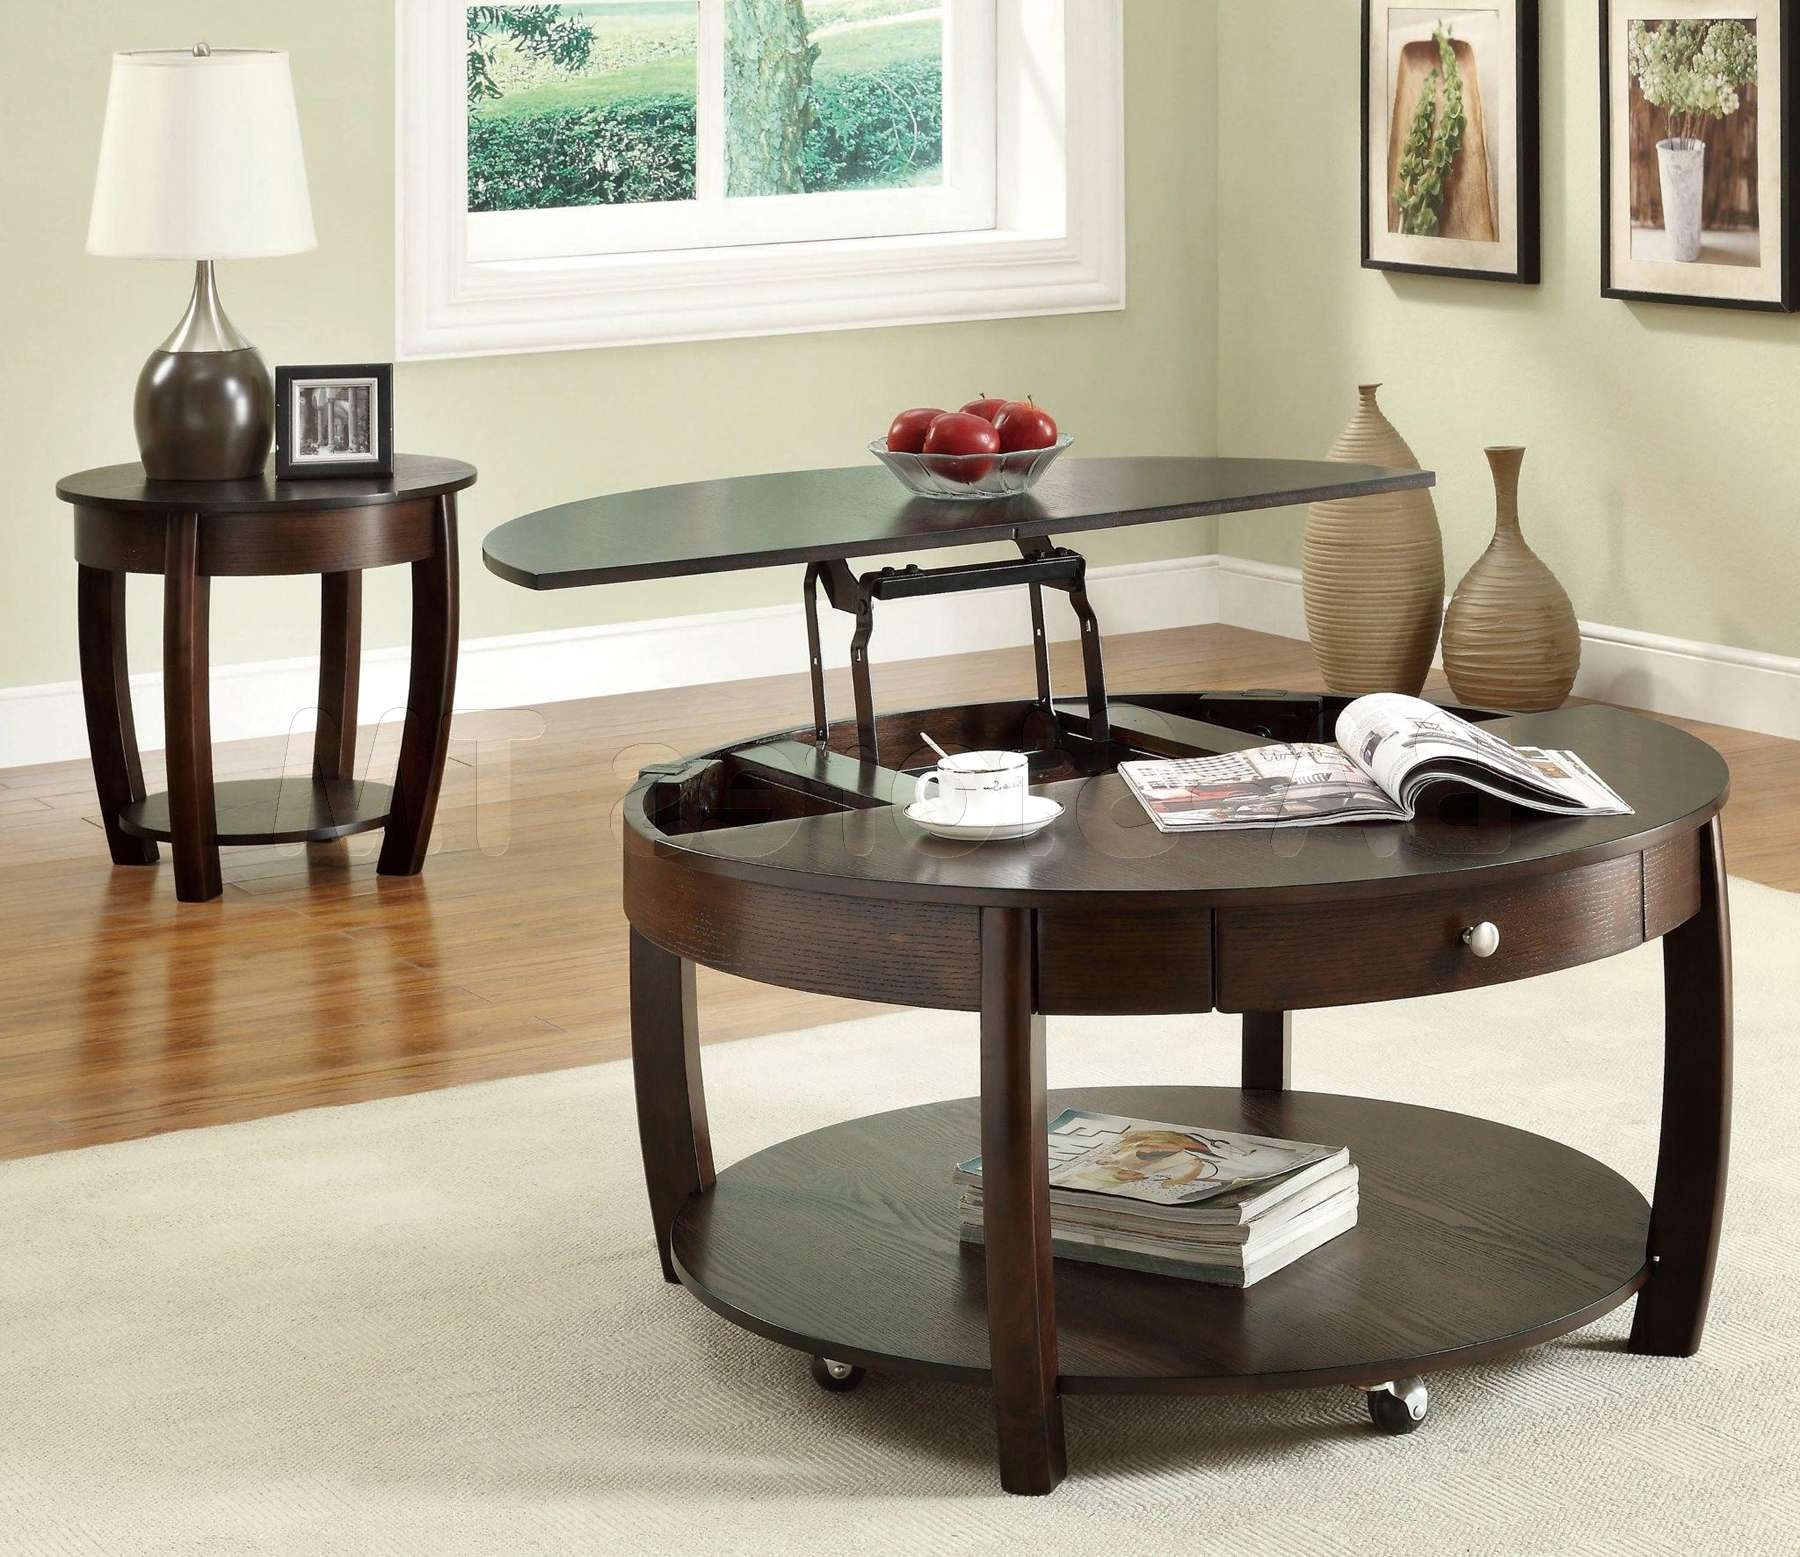 Glass Coffee Tables: Fascinating Glass Lift Top Coffee Table Large Intended For Popular Glass Lift Top Coffee Tables (View 4 of 20)